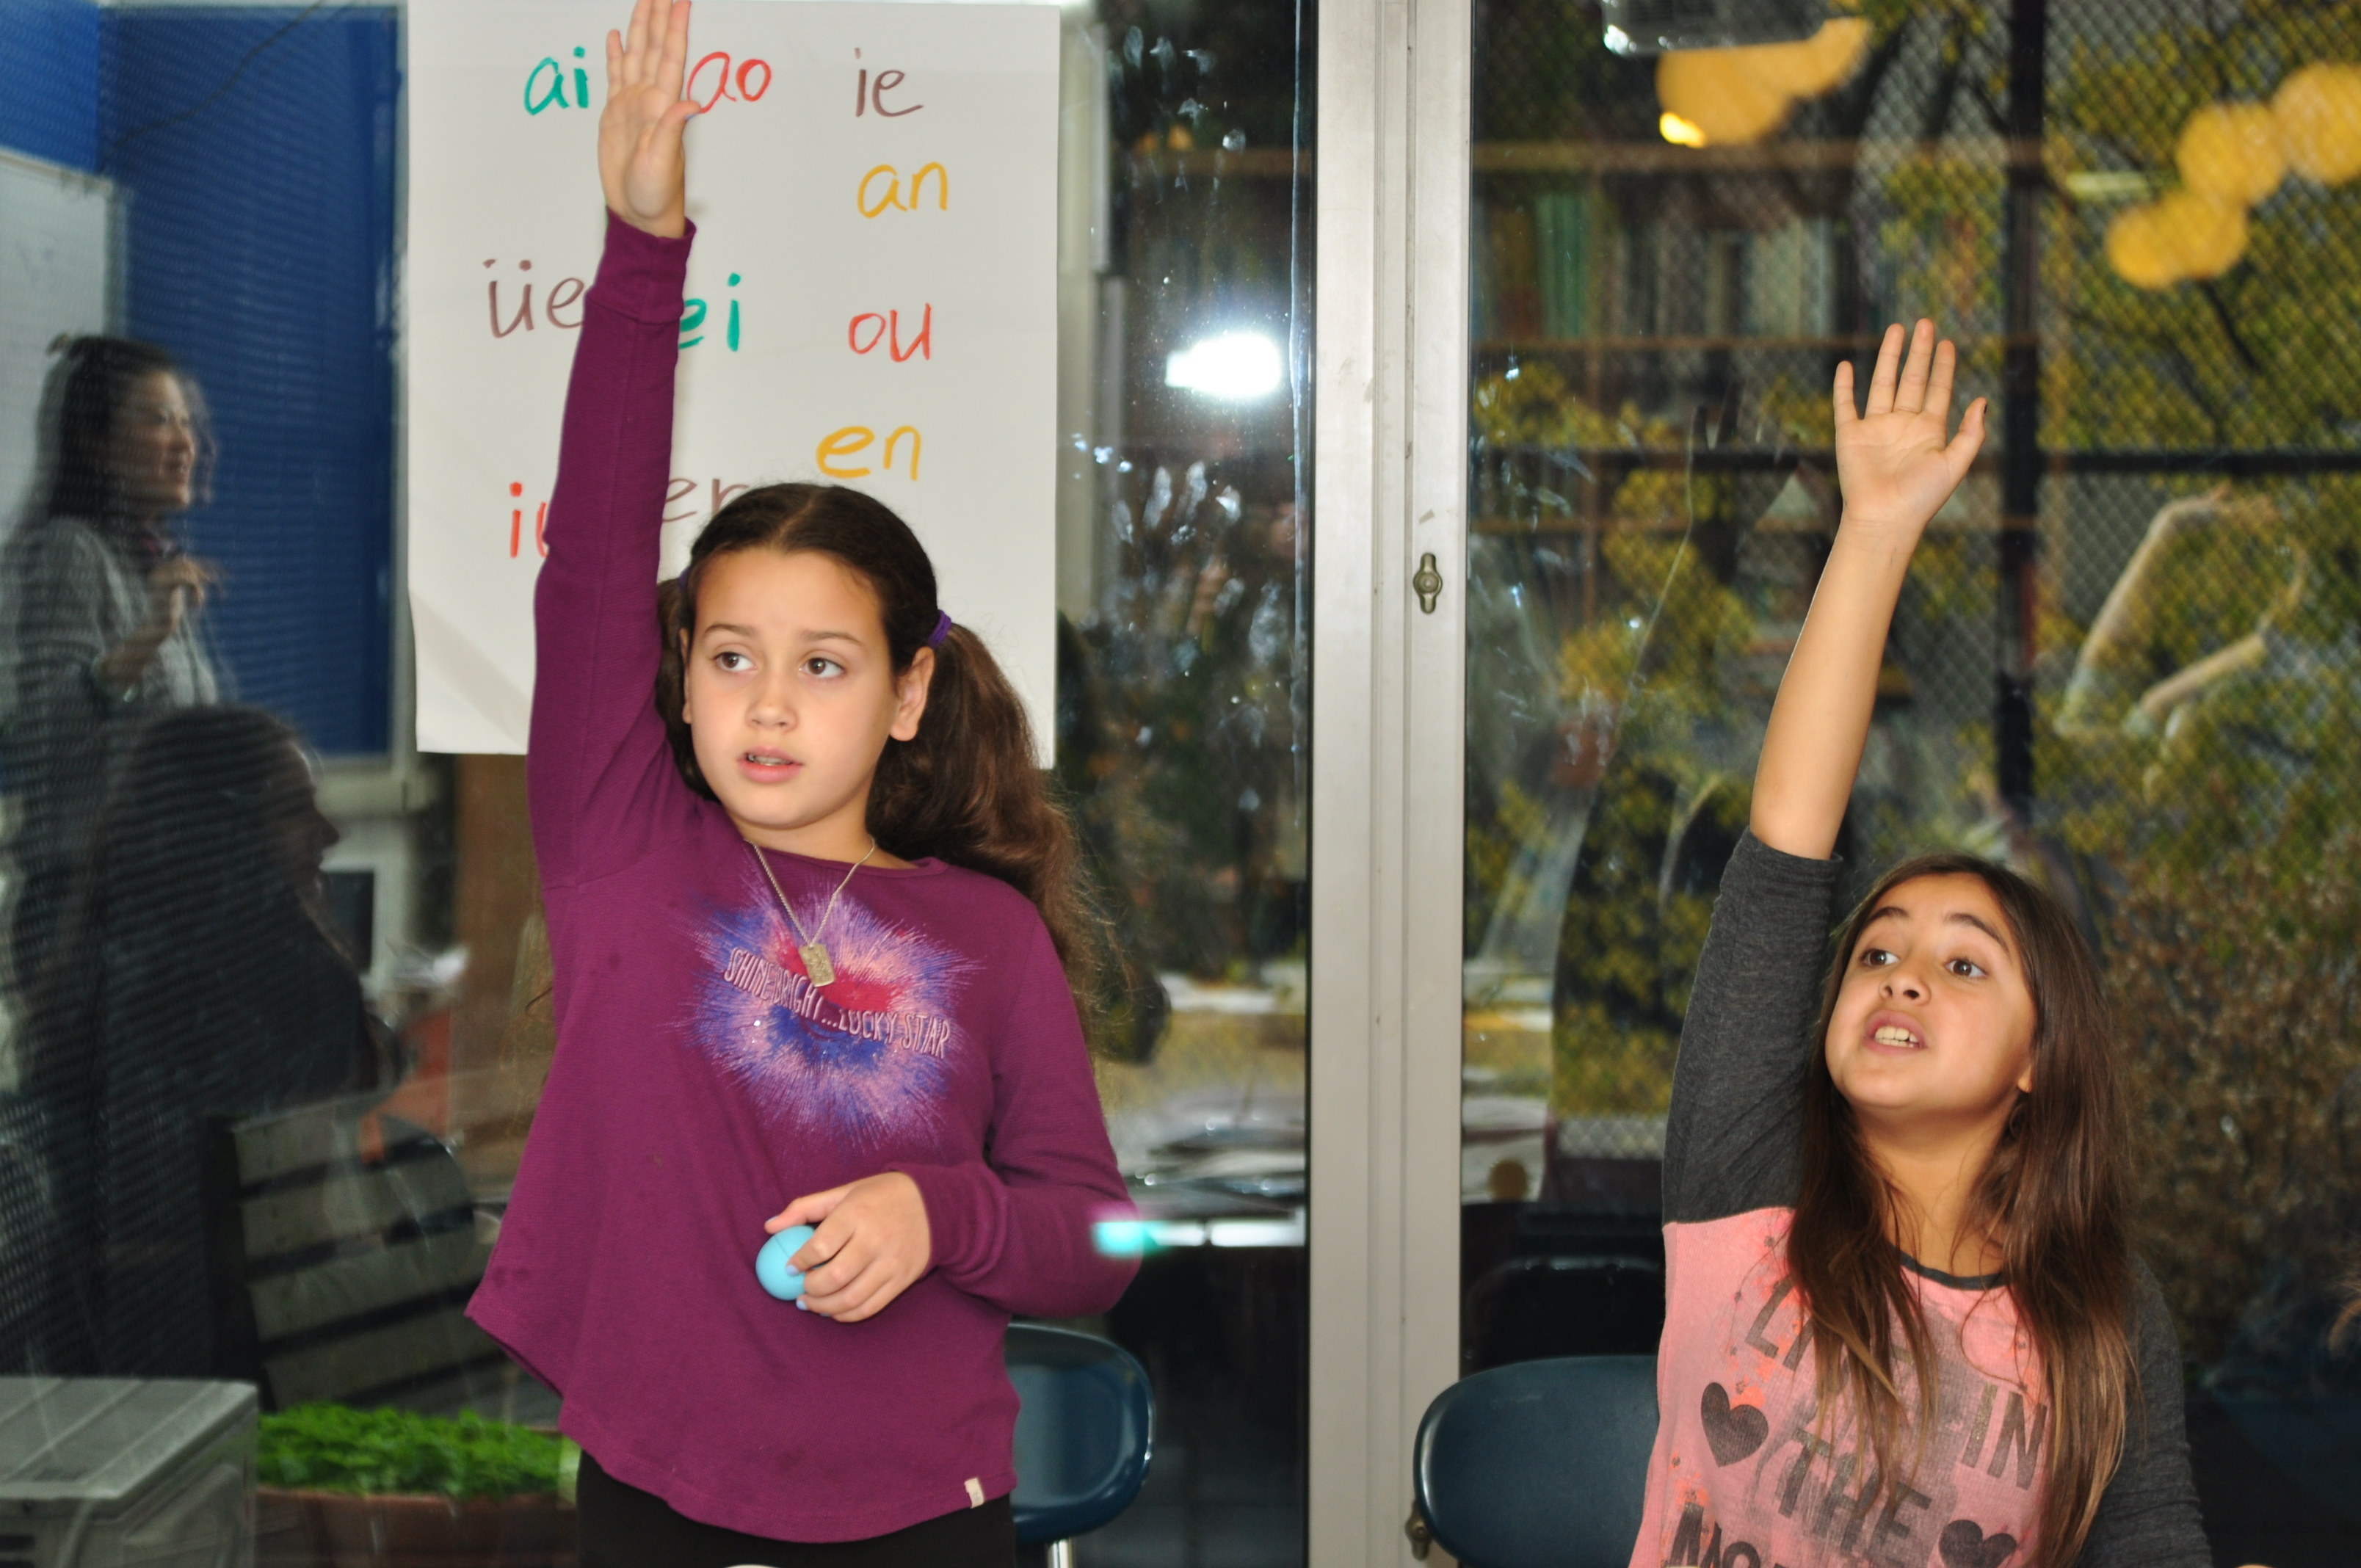 Middle School students raise their hands and show their enthusiasm to share their voice in the classroom.